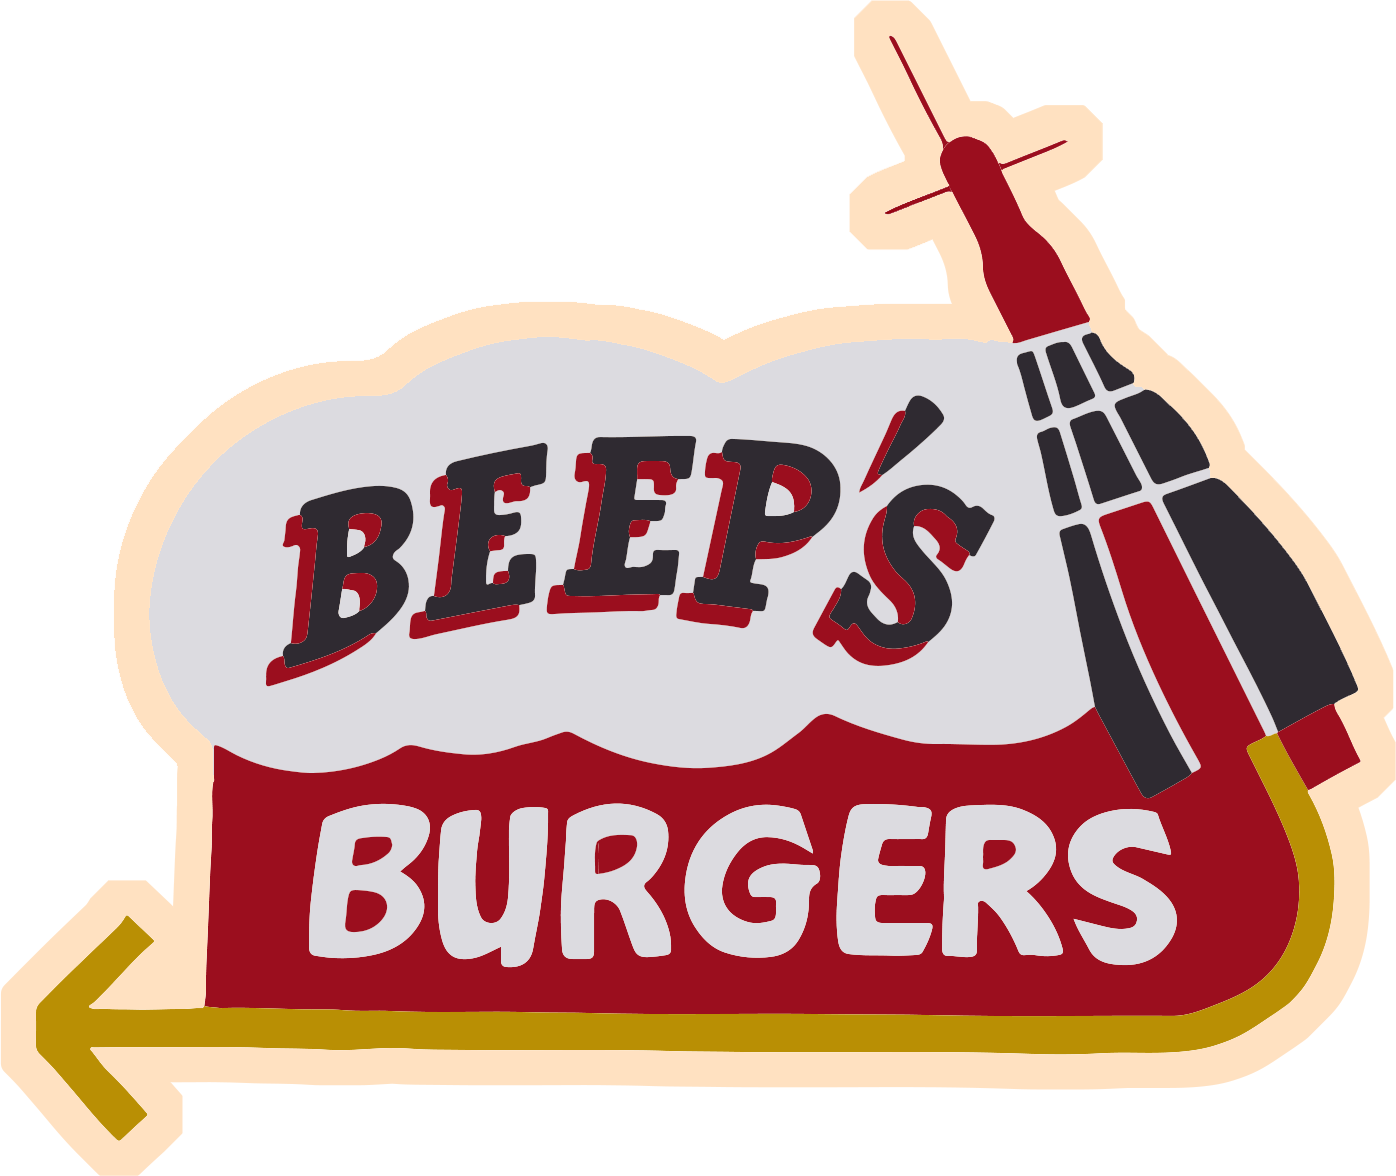 Hot dog chips clipart picture royalty free library Beep's Burgers picture royalty free library